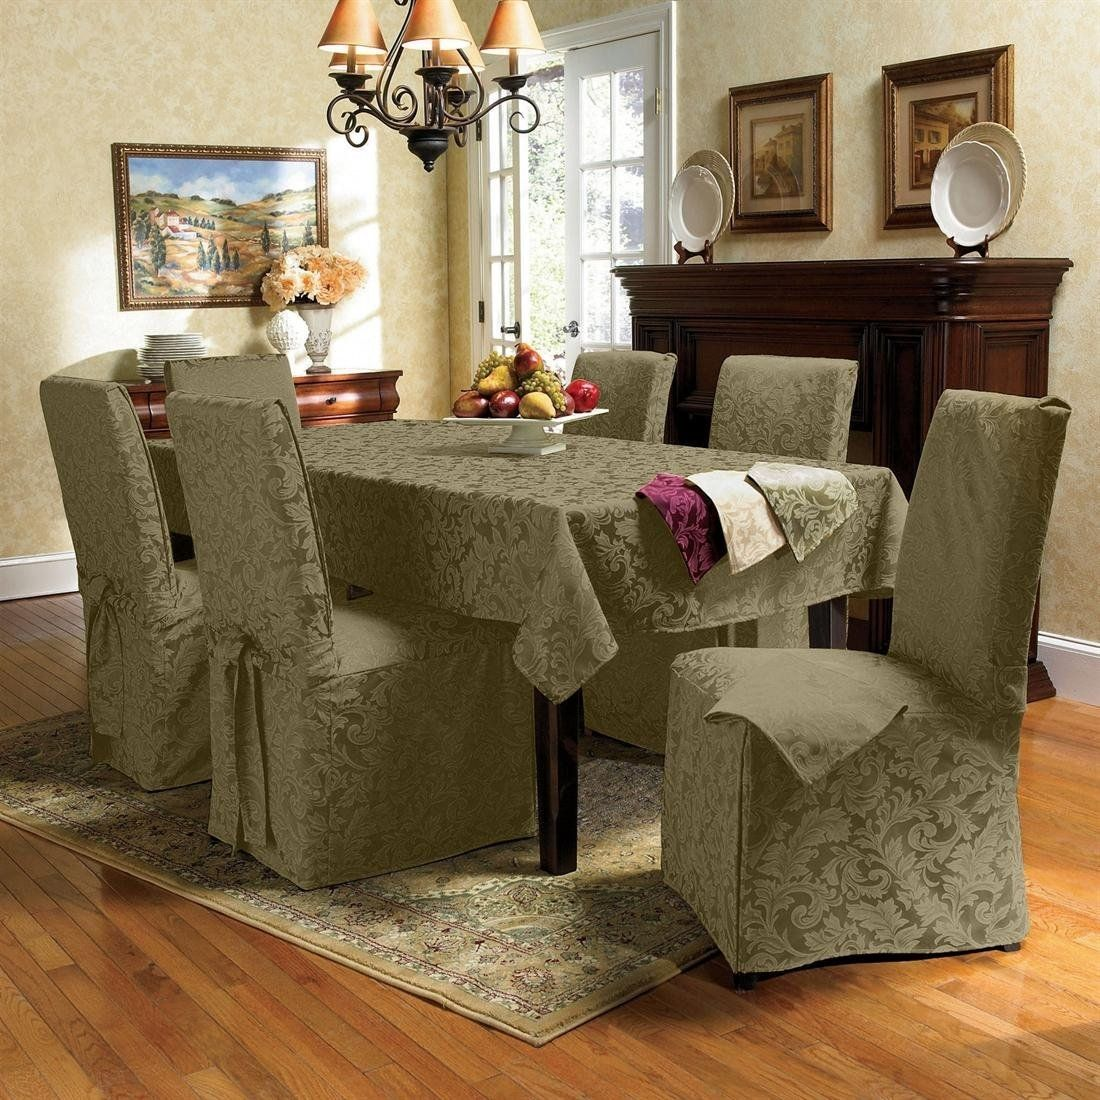 Large dining chair cushion covers